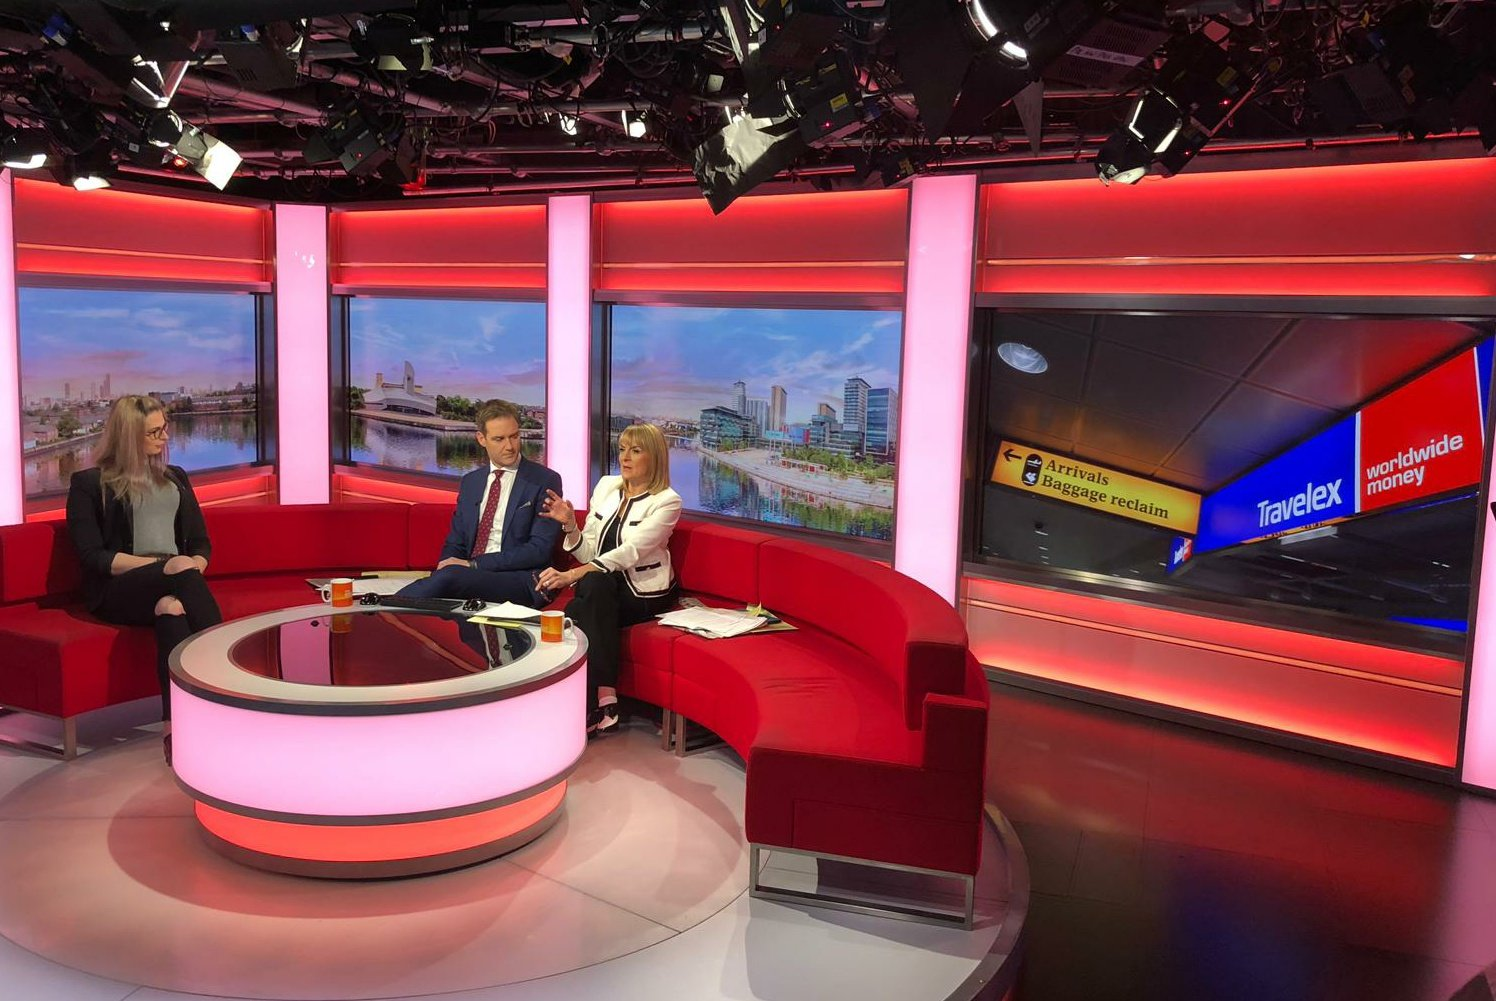 BBC Breakfast, 8th January 2020